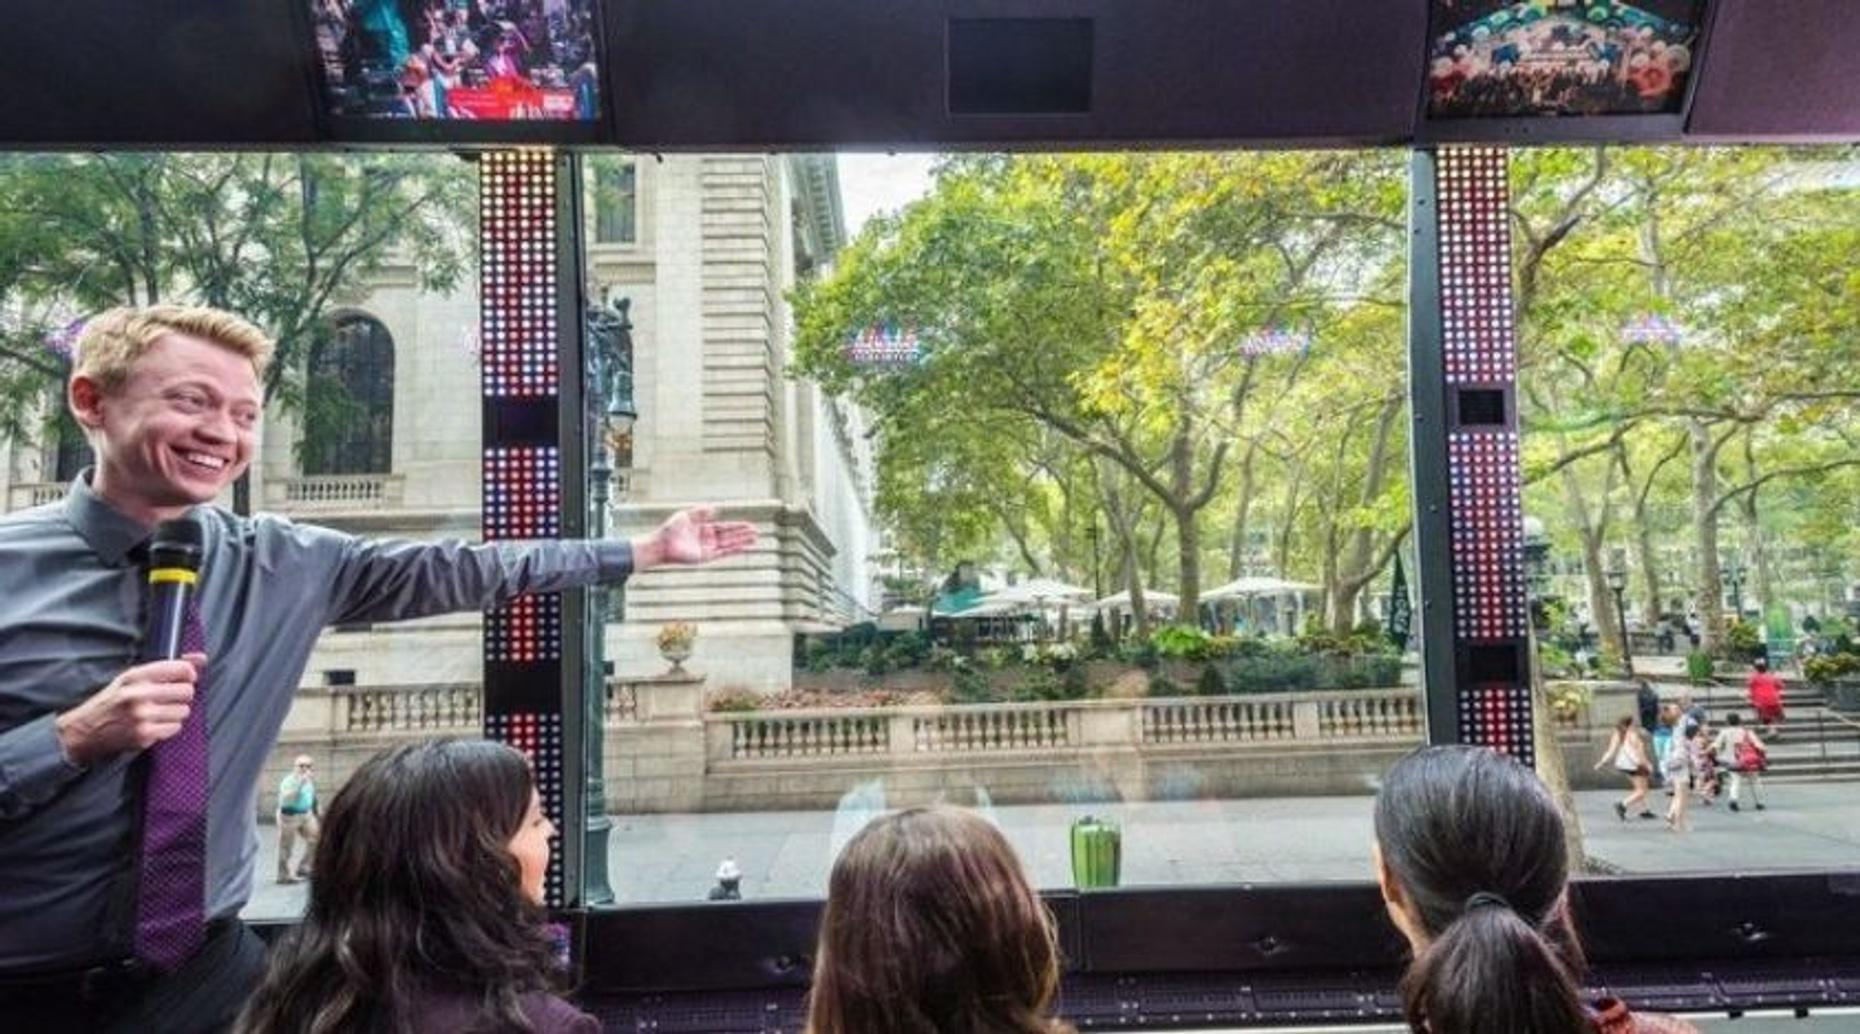 Multimedia Sightseeing Tour in New York City